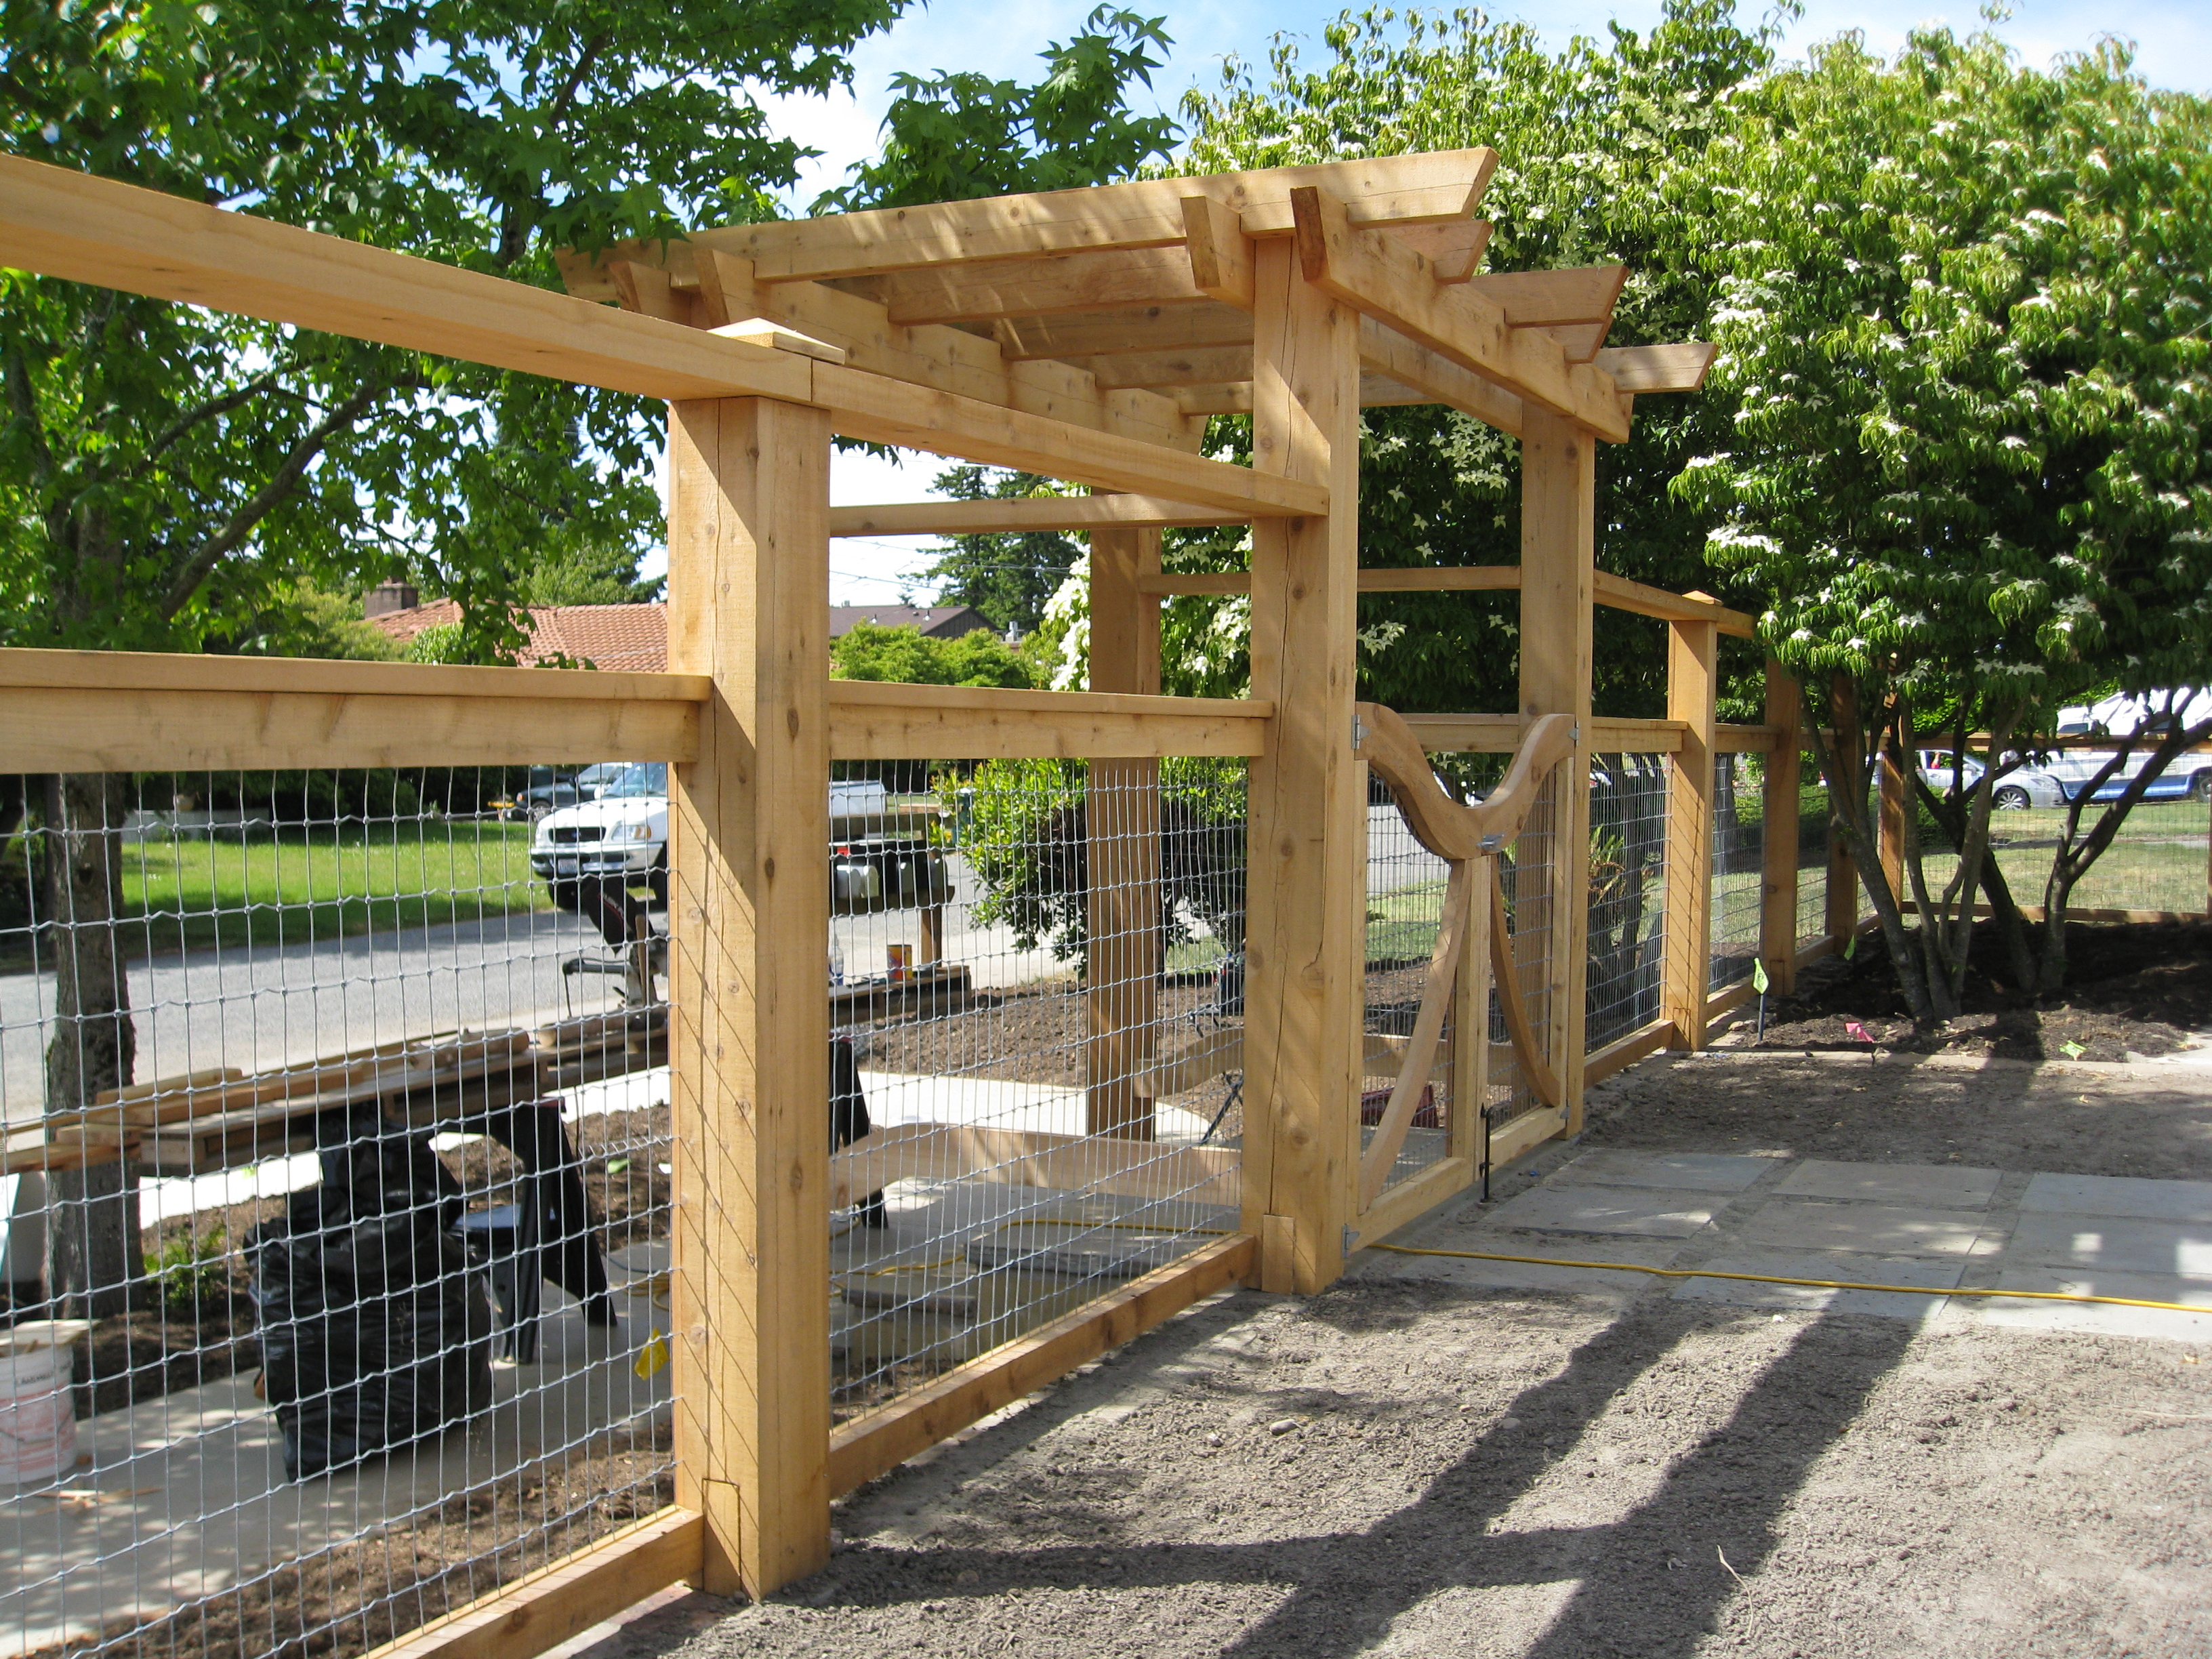 timber arbor and wire fence - katemartindesign.com